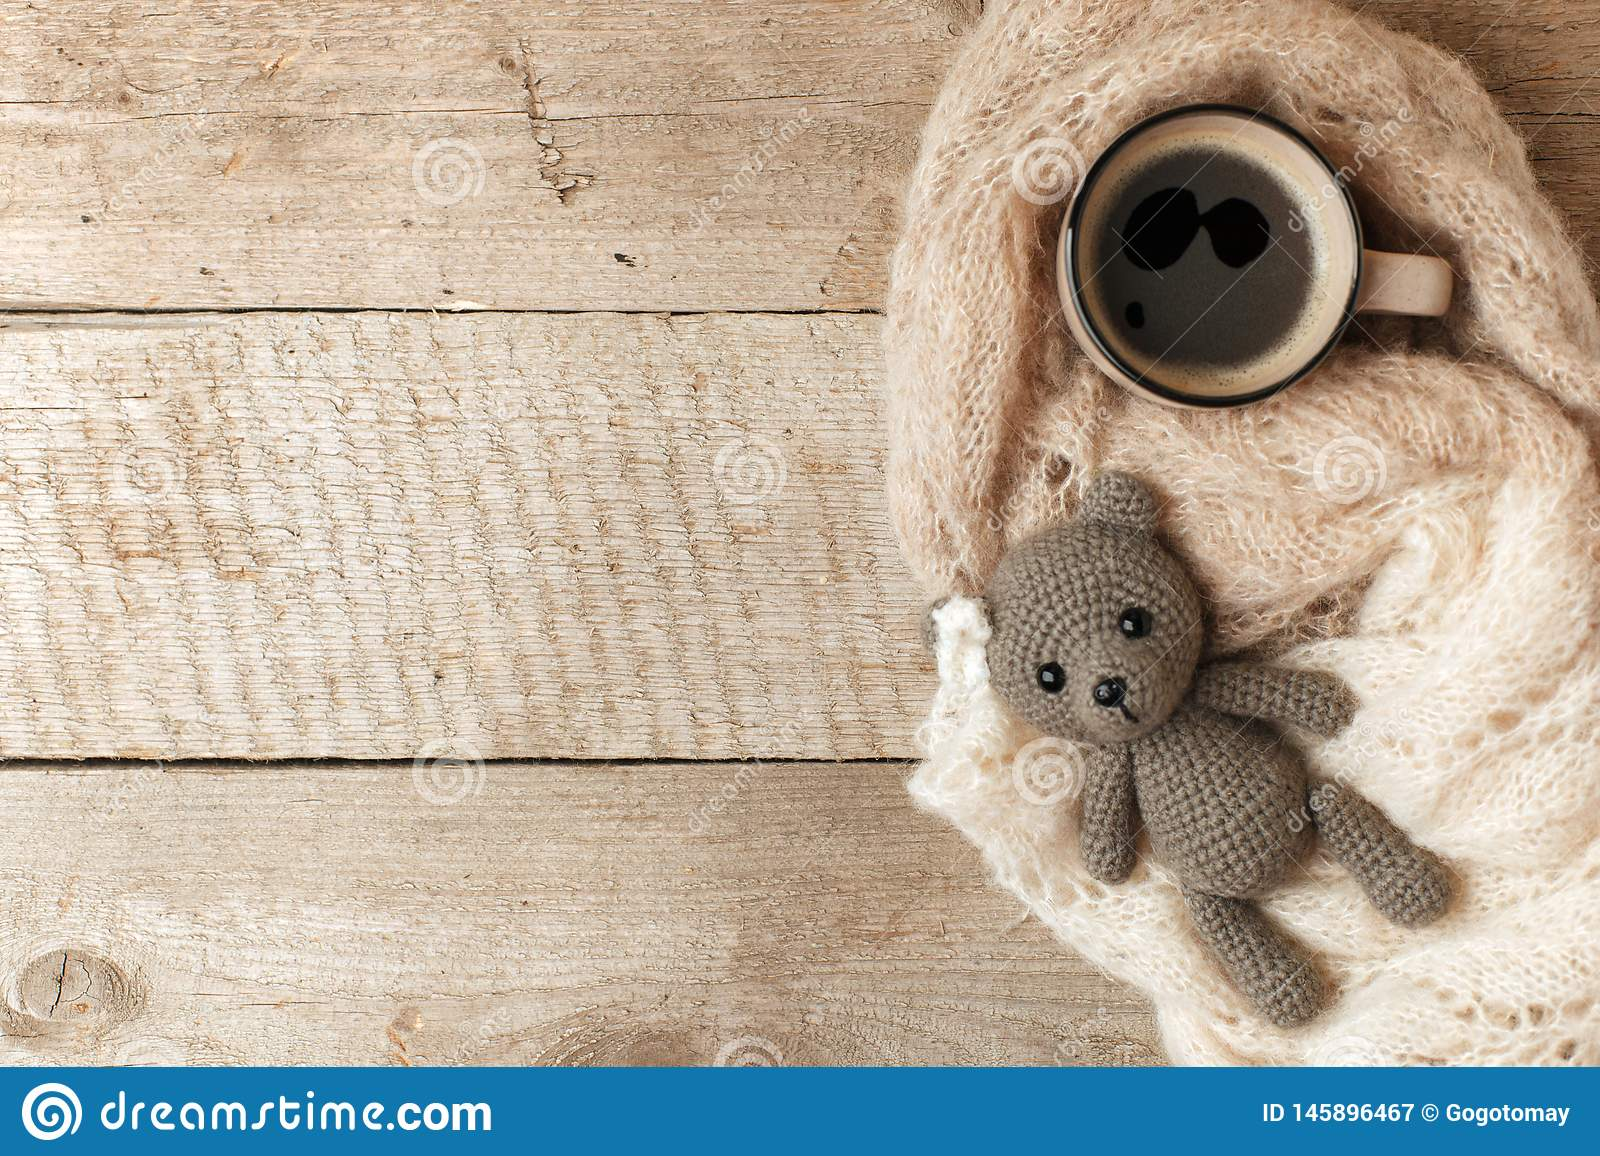 cozy-winter-autumn-morning-home-hot-coffee-warm-blanket-ghandcrafted-knitted-toy-bear-swedish-hygge-concept-monochrome-copy-145896467.jpg